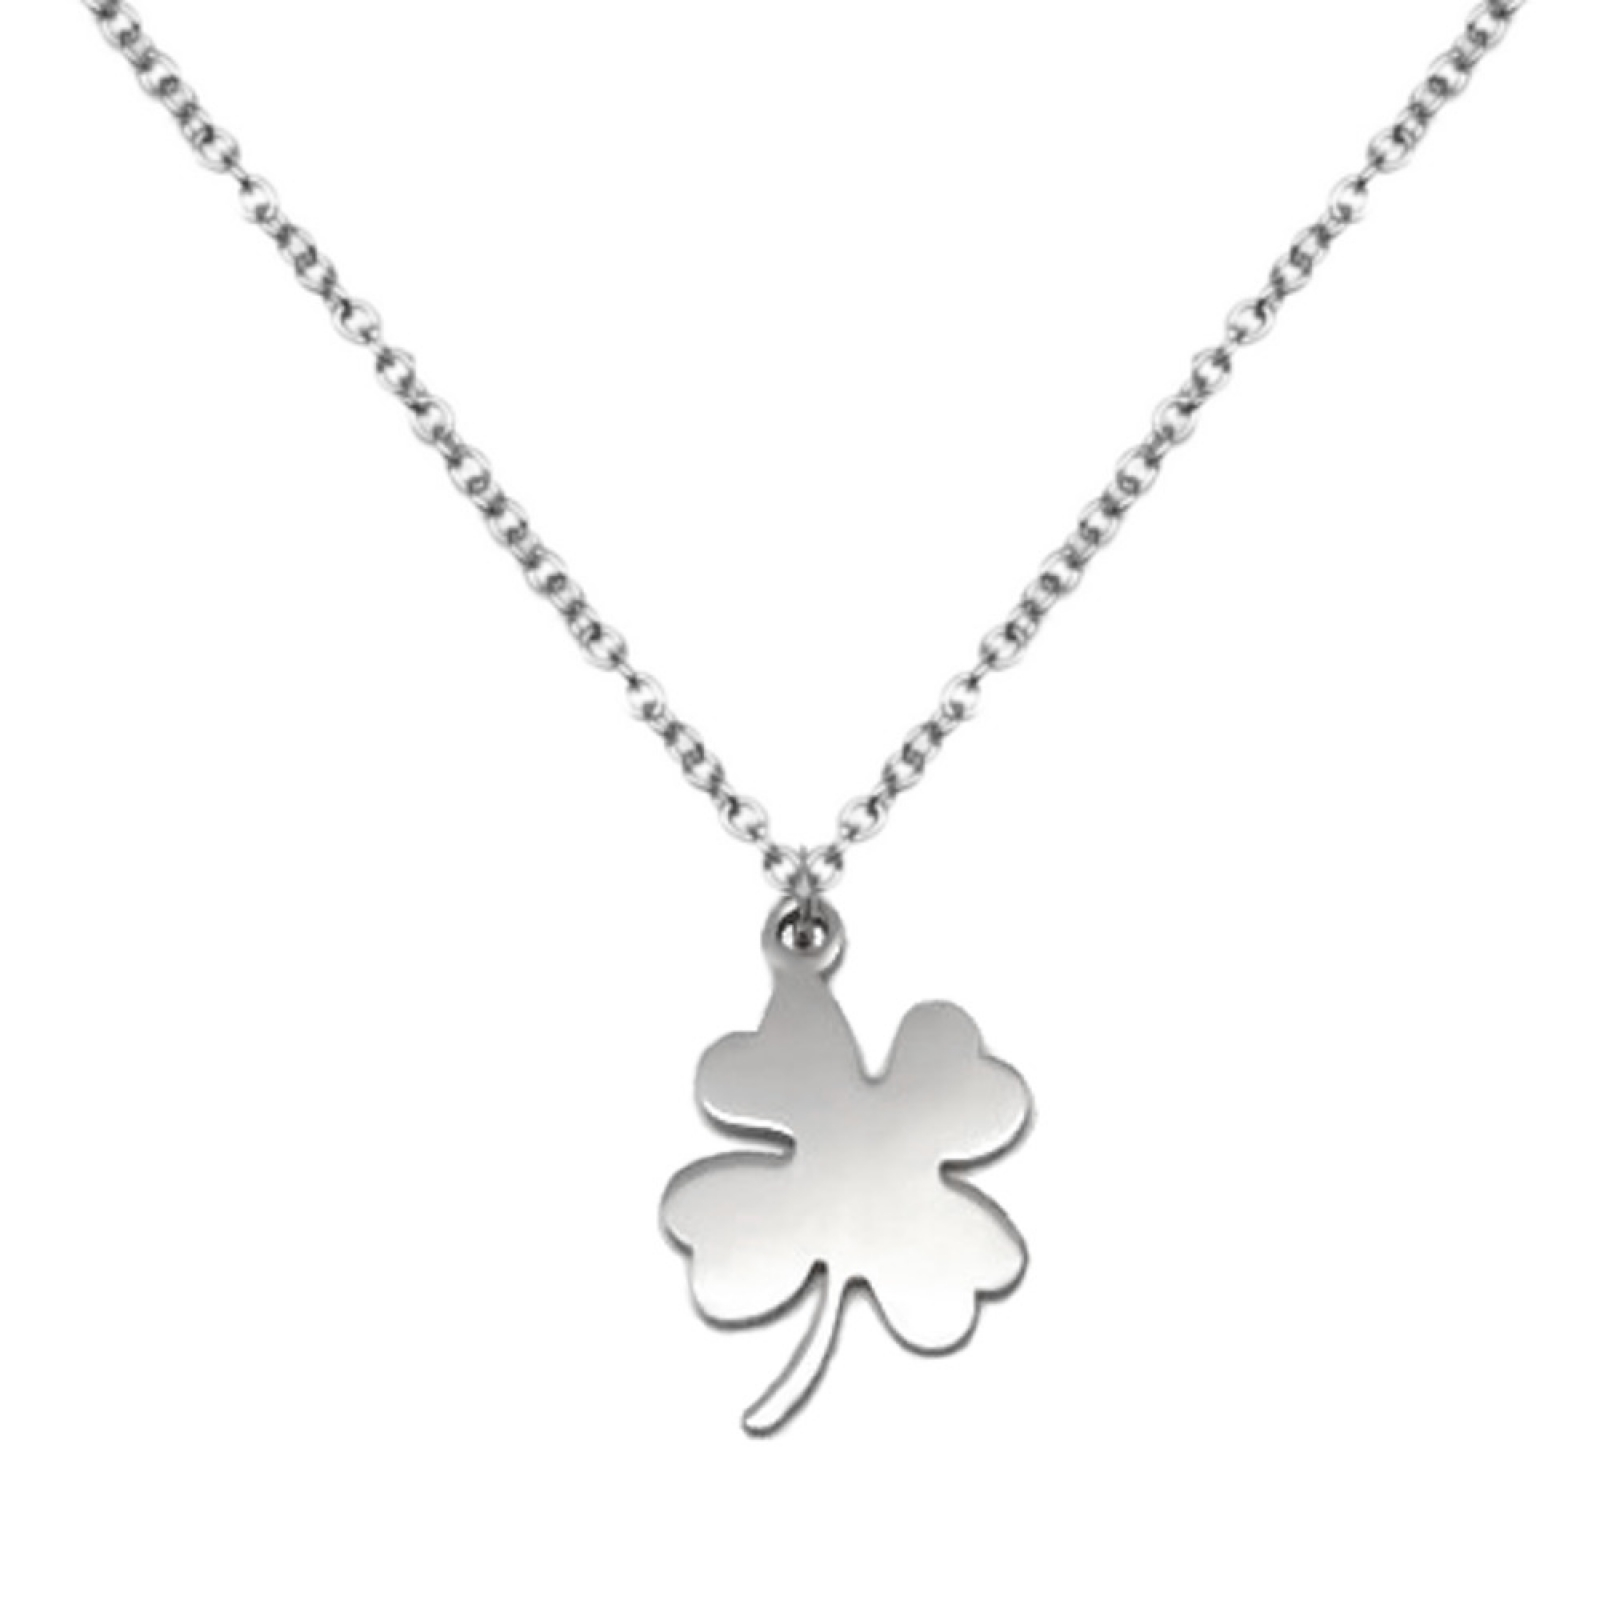 pendant green cz clover leaf sterling lucky four silver necklace